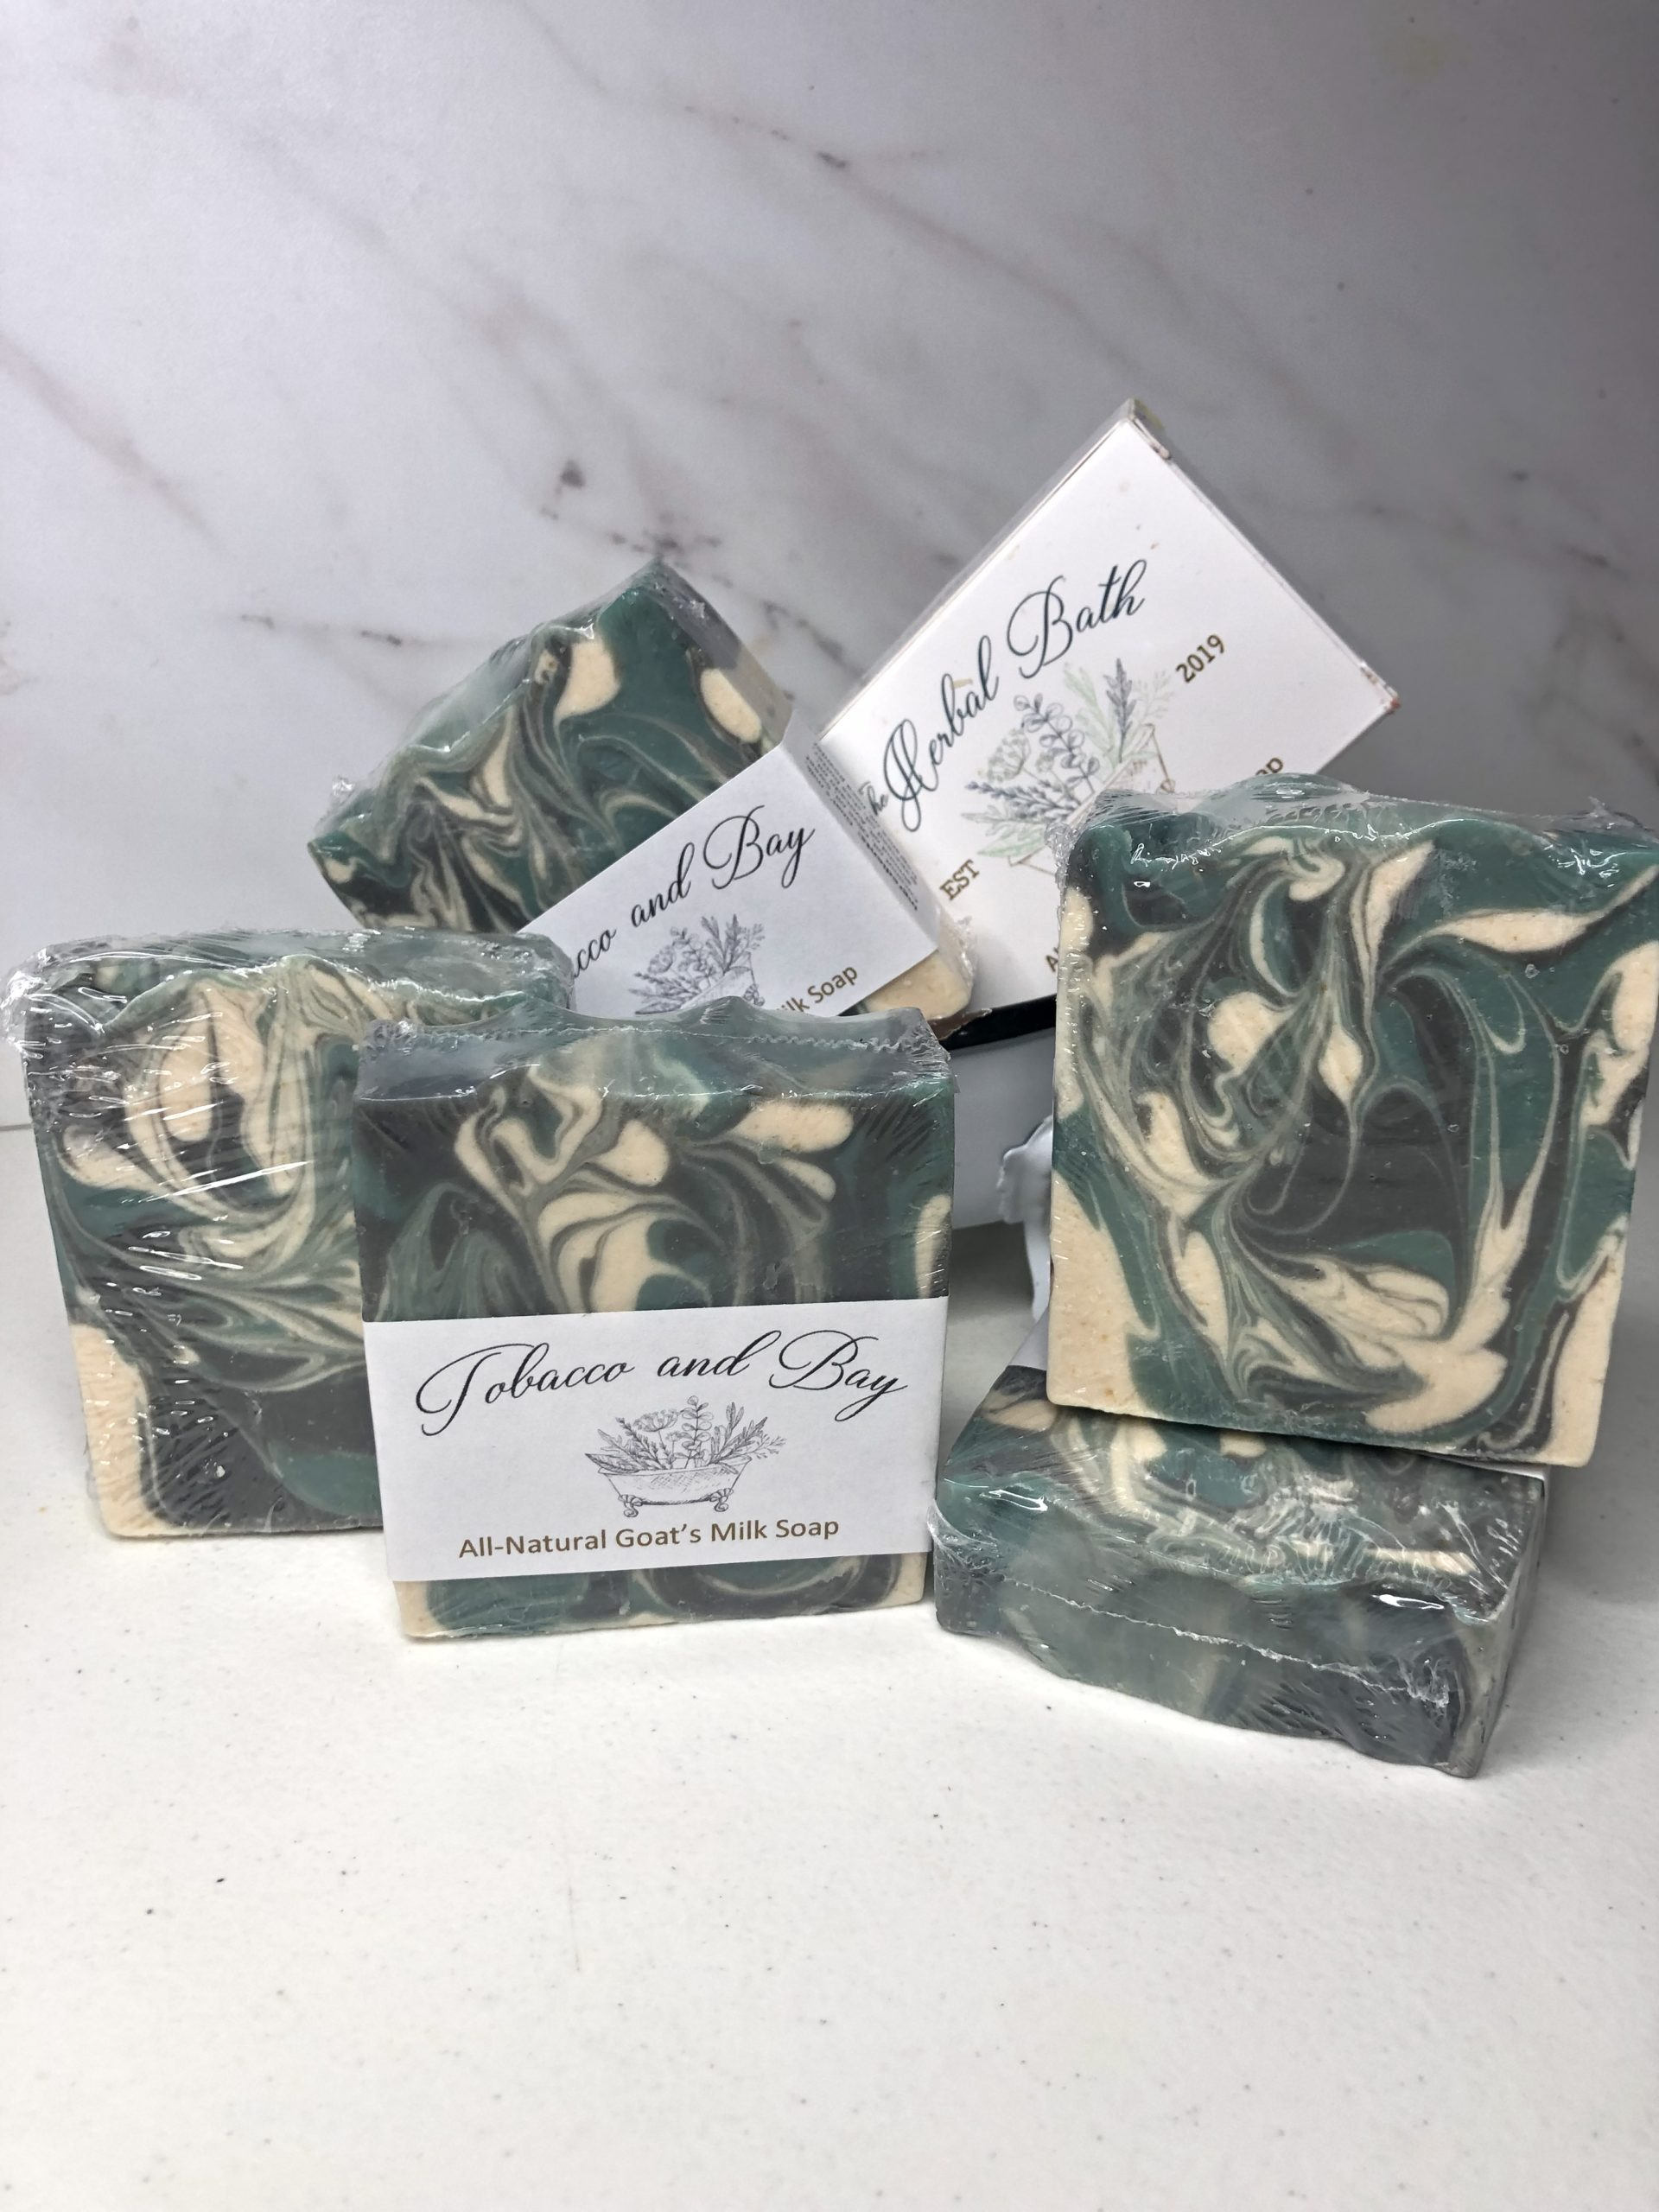 Tobacco and Bay Soap